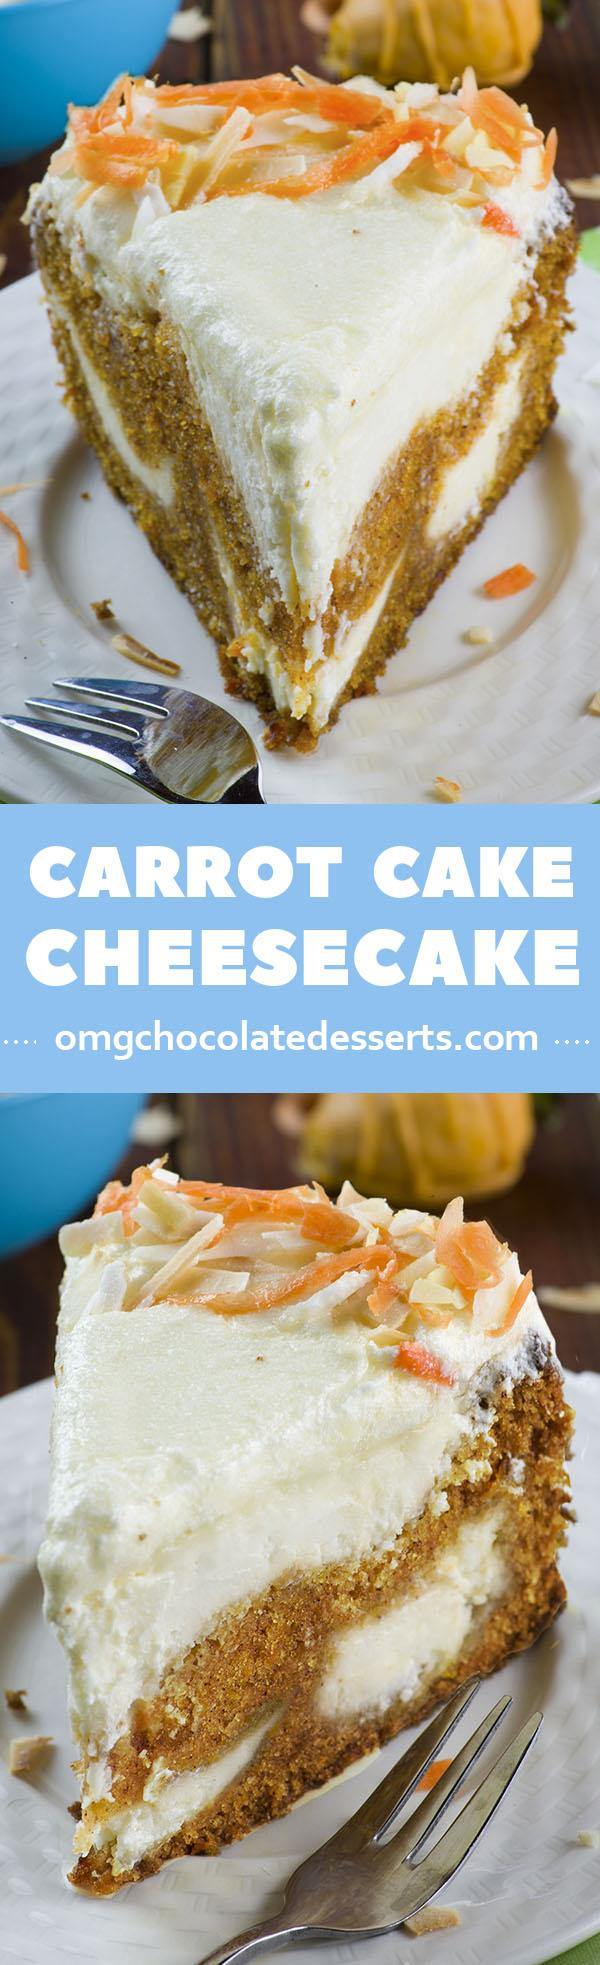 Search for Easter dessert idea? This yummy Carrot Cake Cheesecake is like carrot cake with a lot of cream cheesy flavor.